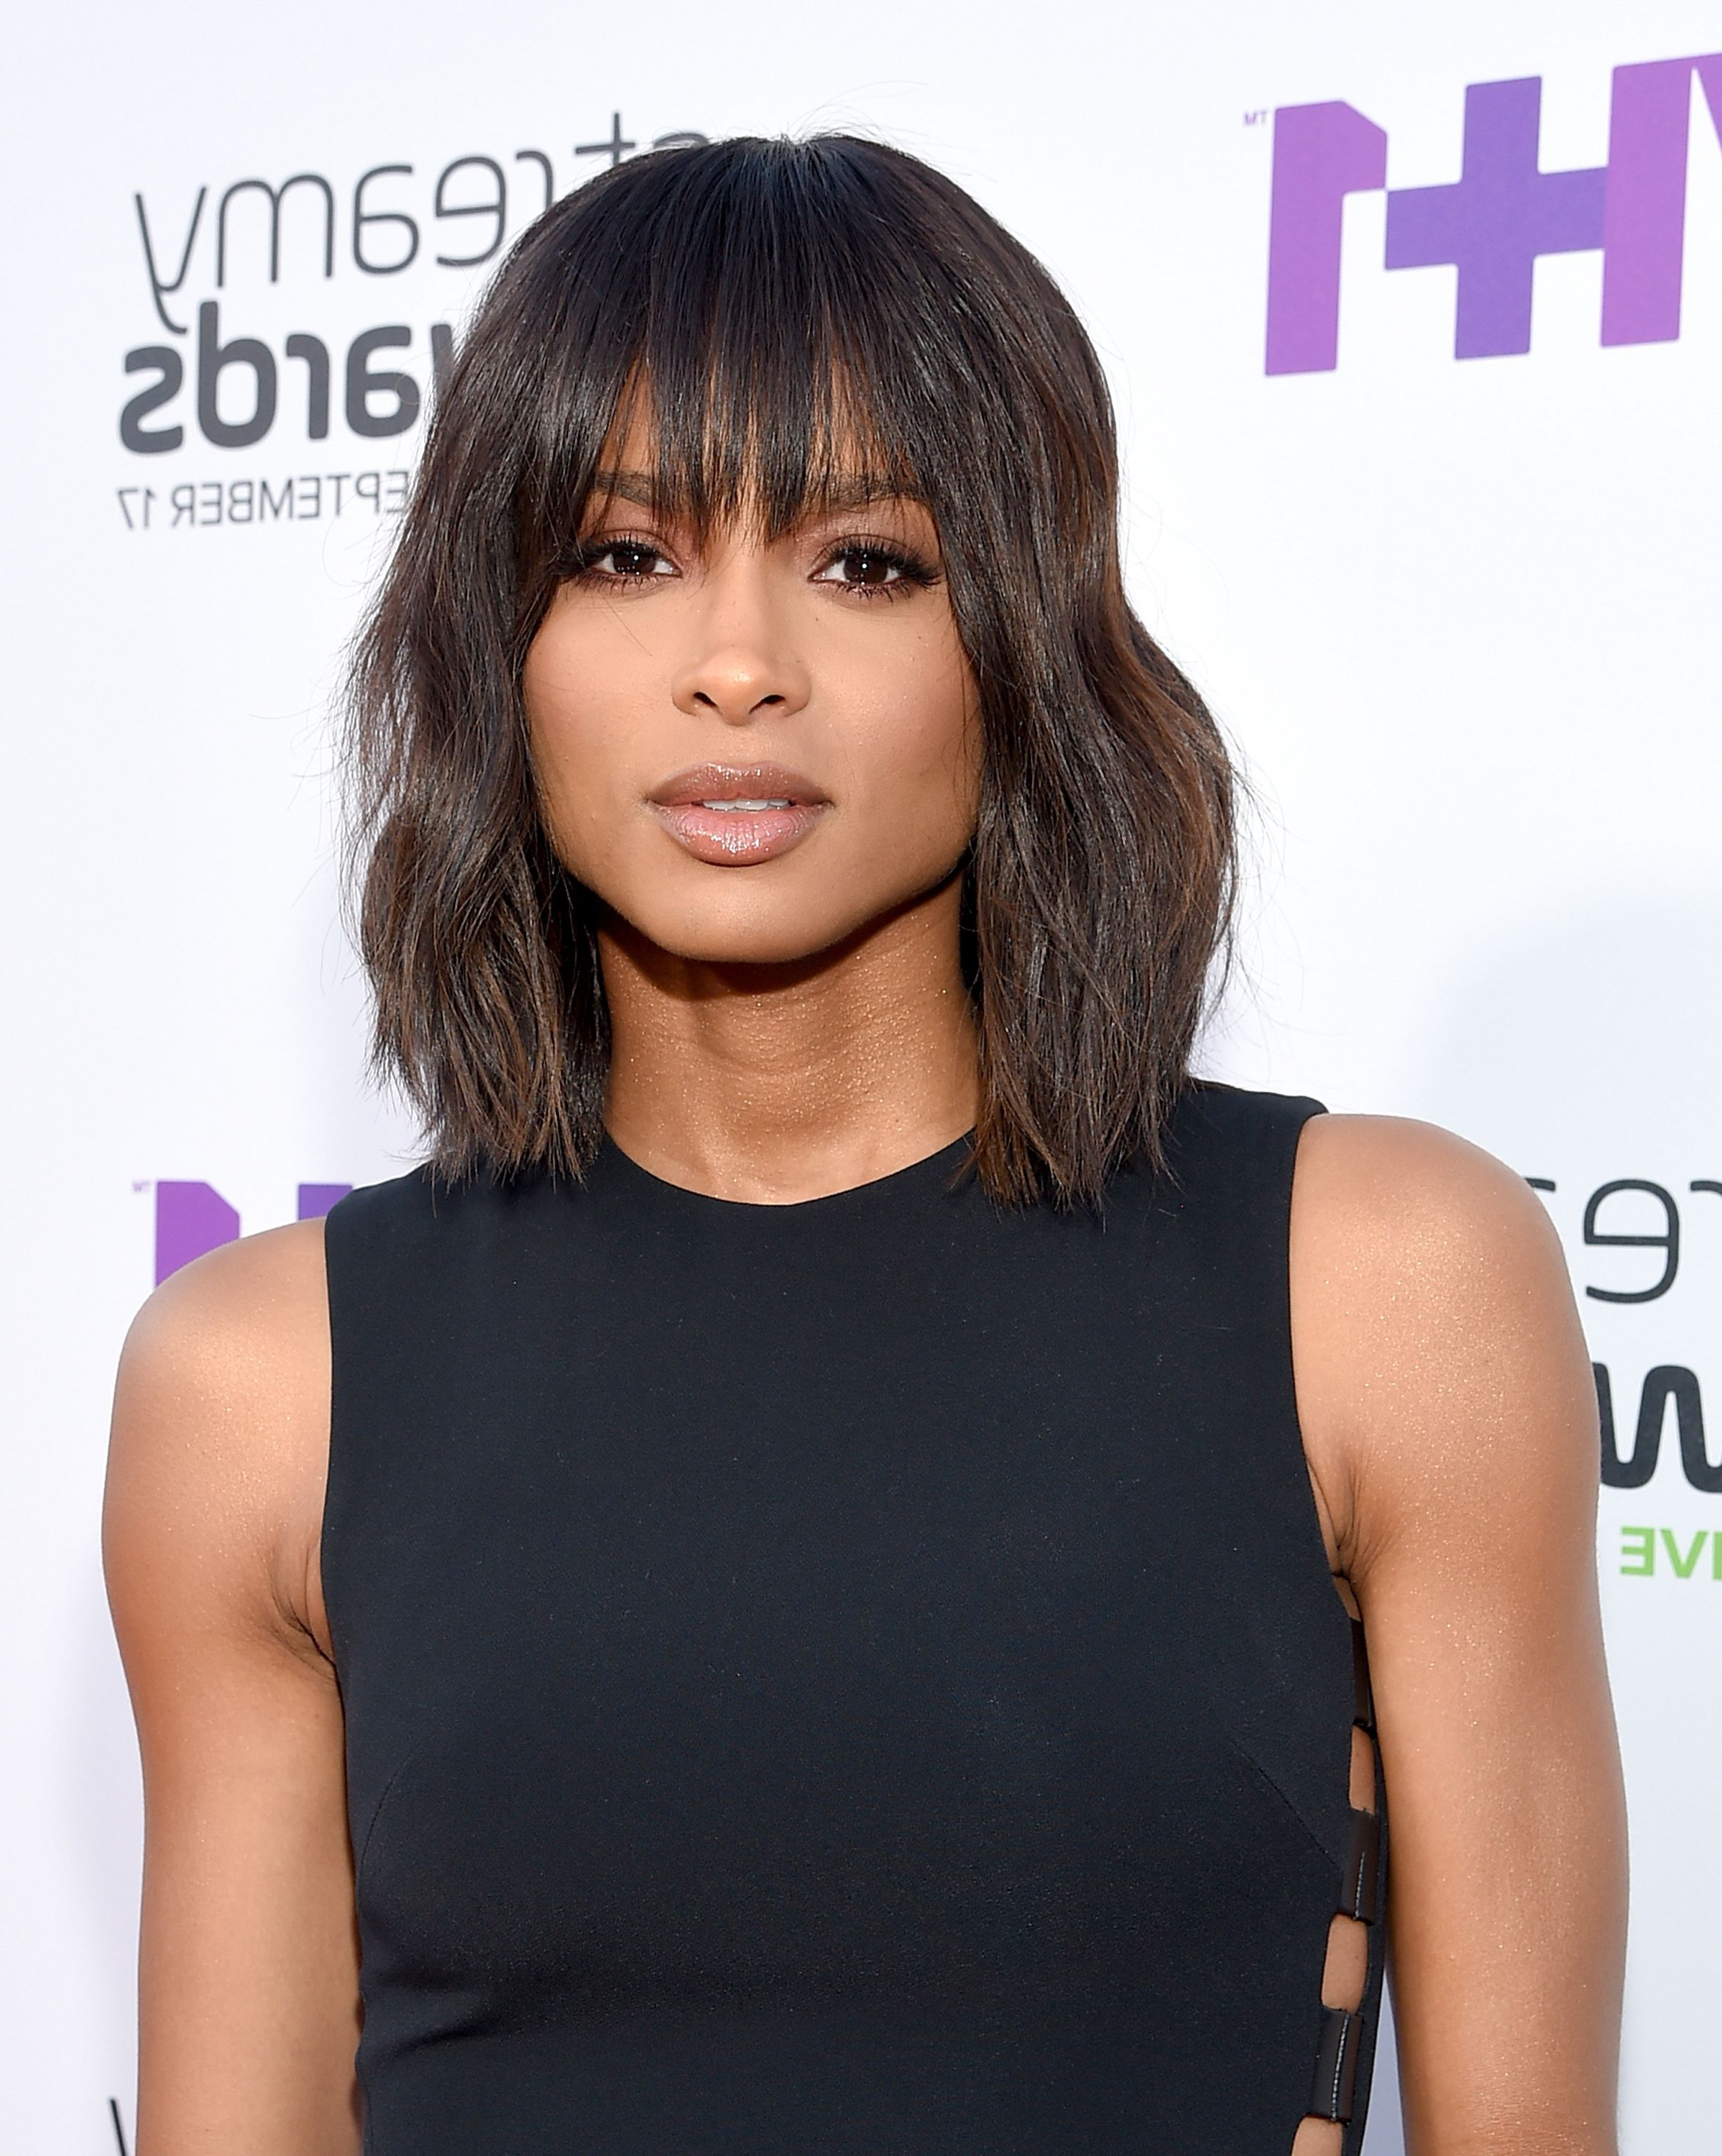 60 Best Medium Hairstyles And Shoulder Length Haircuts Of 2018 Throughout Favorite Medium Hairstyles With Long Fringe (View 16 of 20)